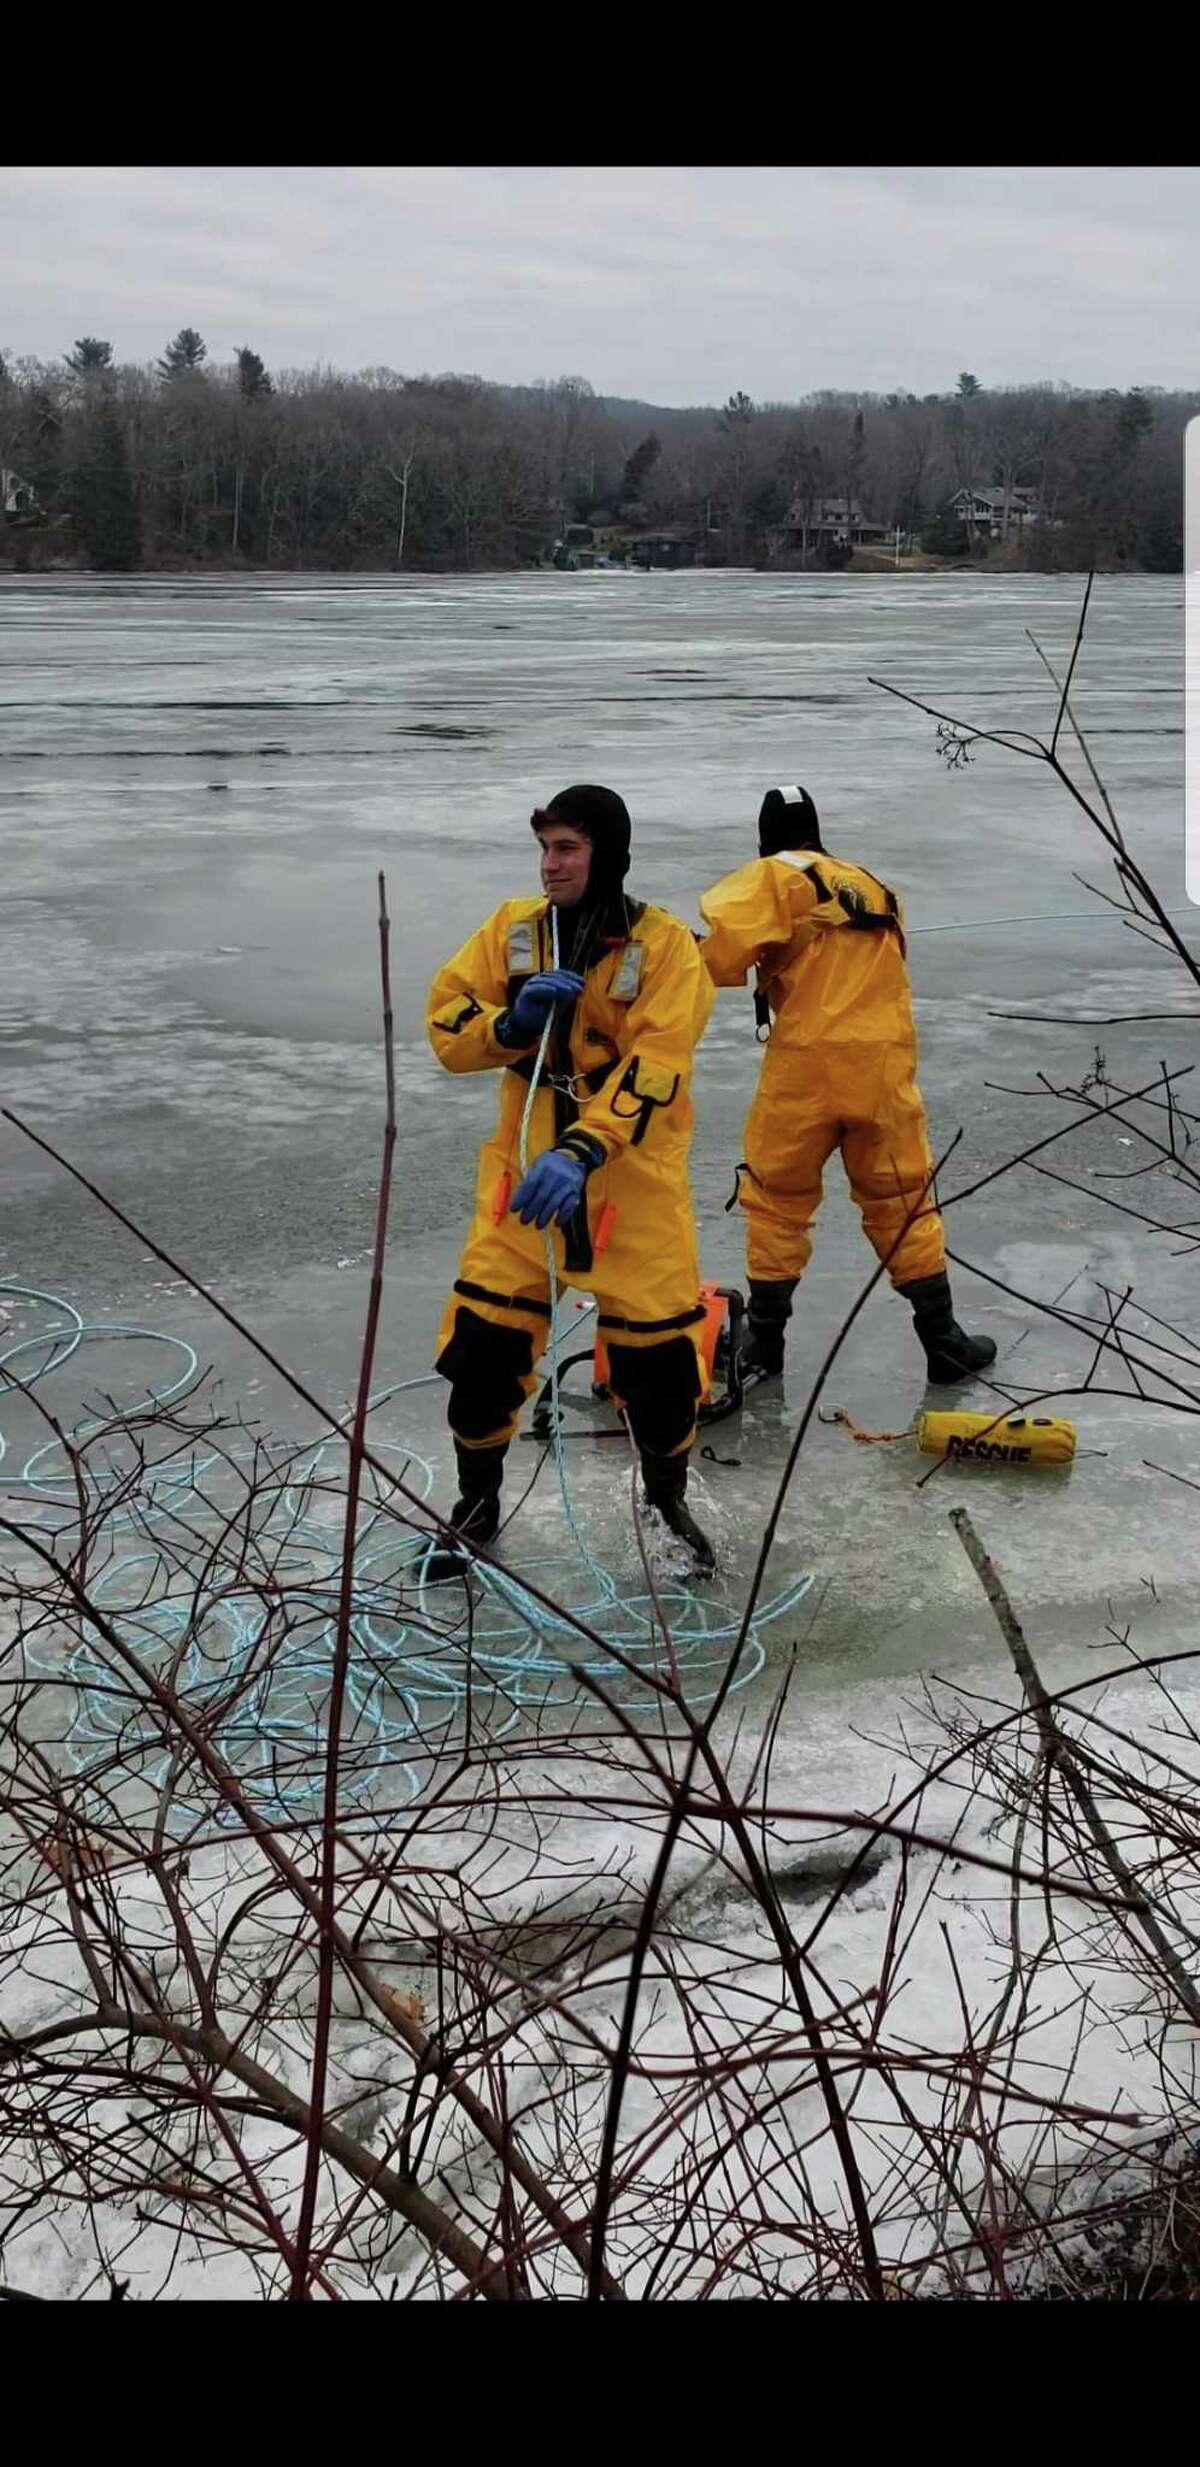 Firefighters Brock Butkovsky (left) and Chris Moquin (right) help rescue a deer that became stranded on the ice on Lake Zoar on Feb. 3, 2019.